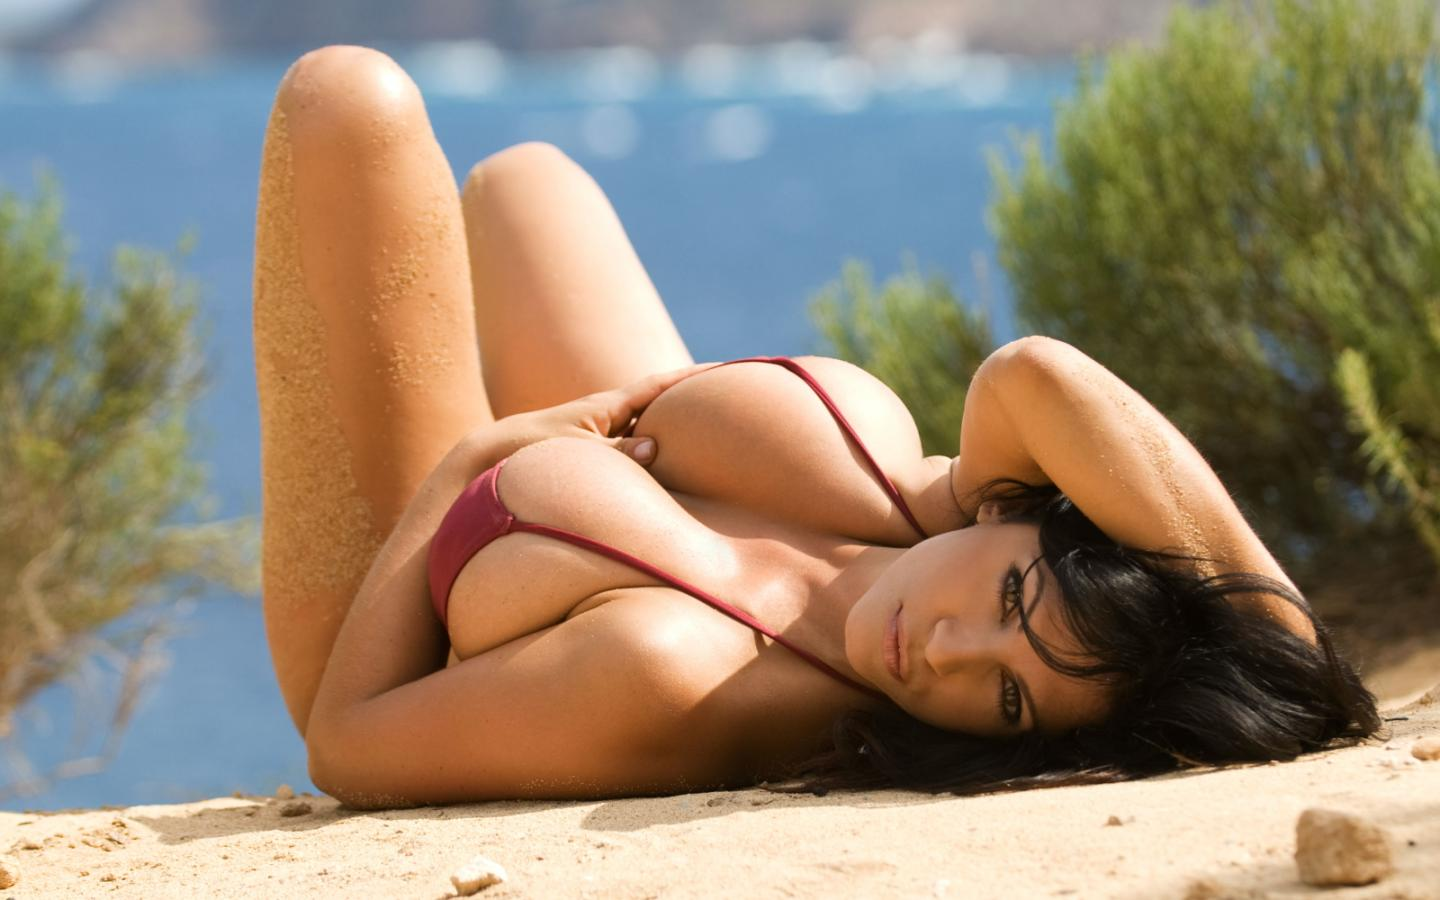 Hot Beaches HD Wallpapers – wallpaper202